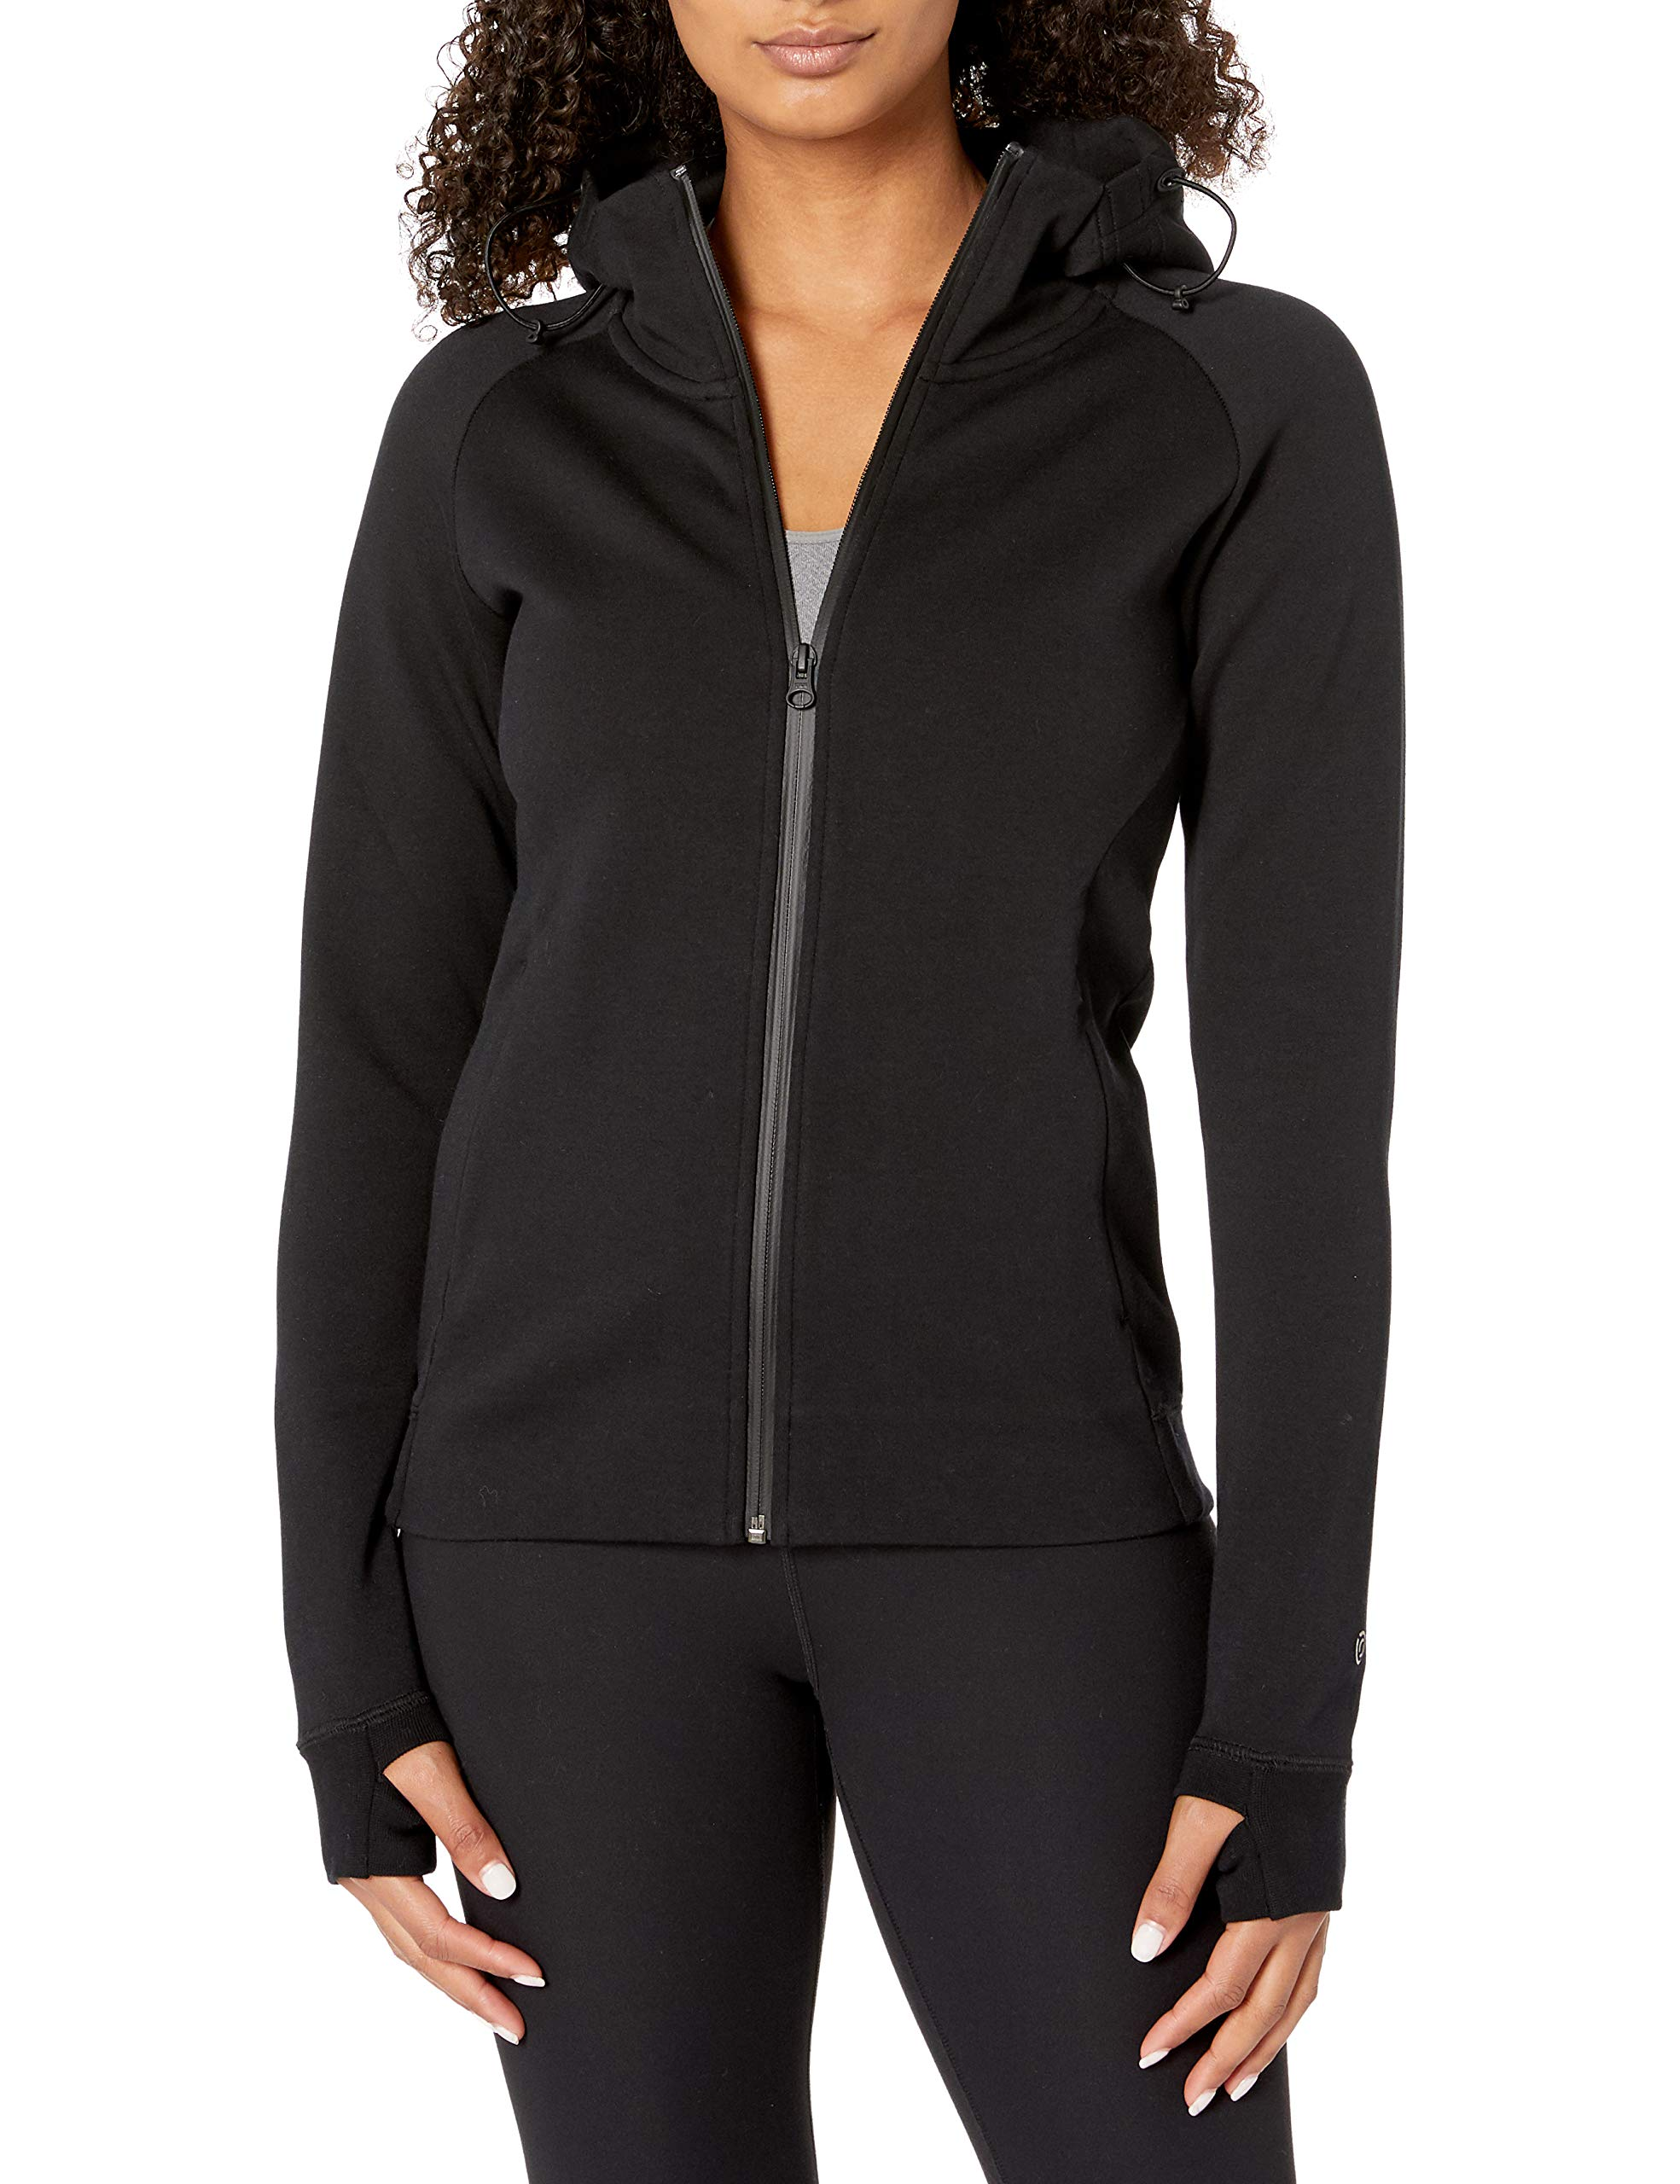 Amazon Brand - Core 10 Women's (XS-3X) Motion Tech Fleece Fitted Full-Zip Hoodie Jacket